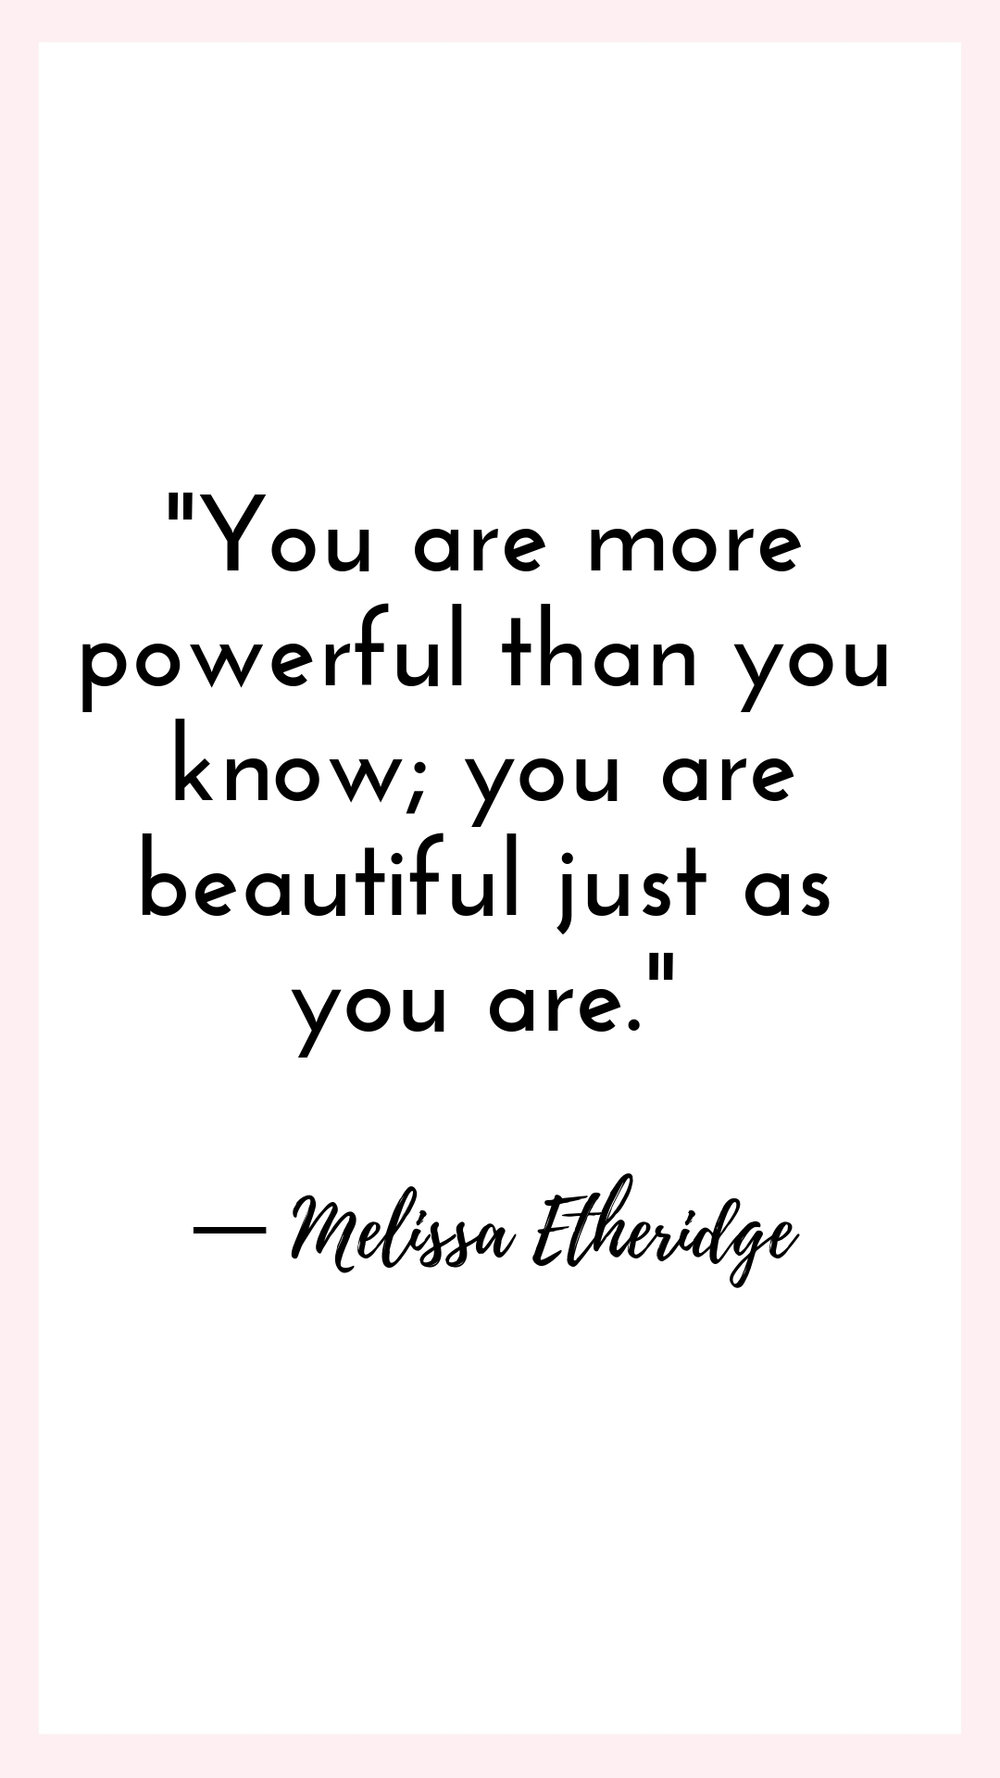 Quotes that empower you to use your voice. Click for more quotes from inspiring women.